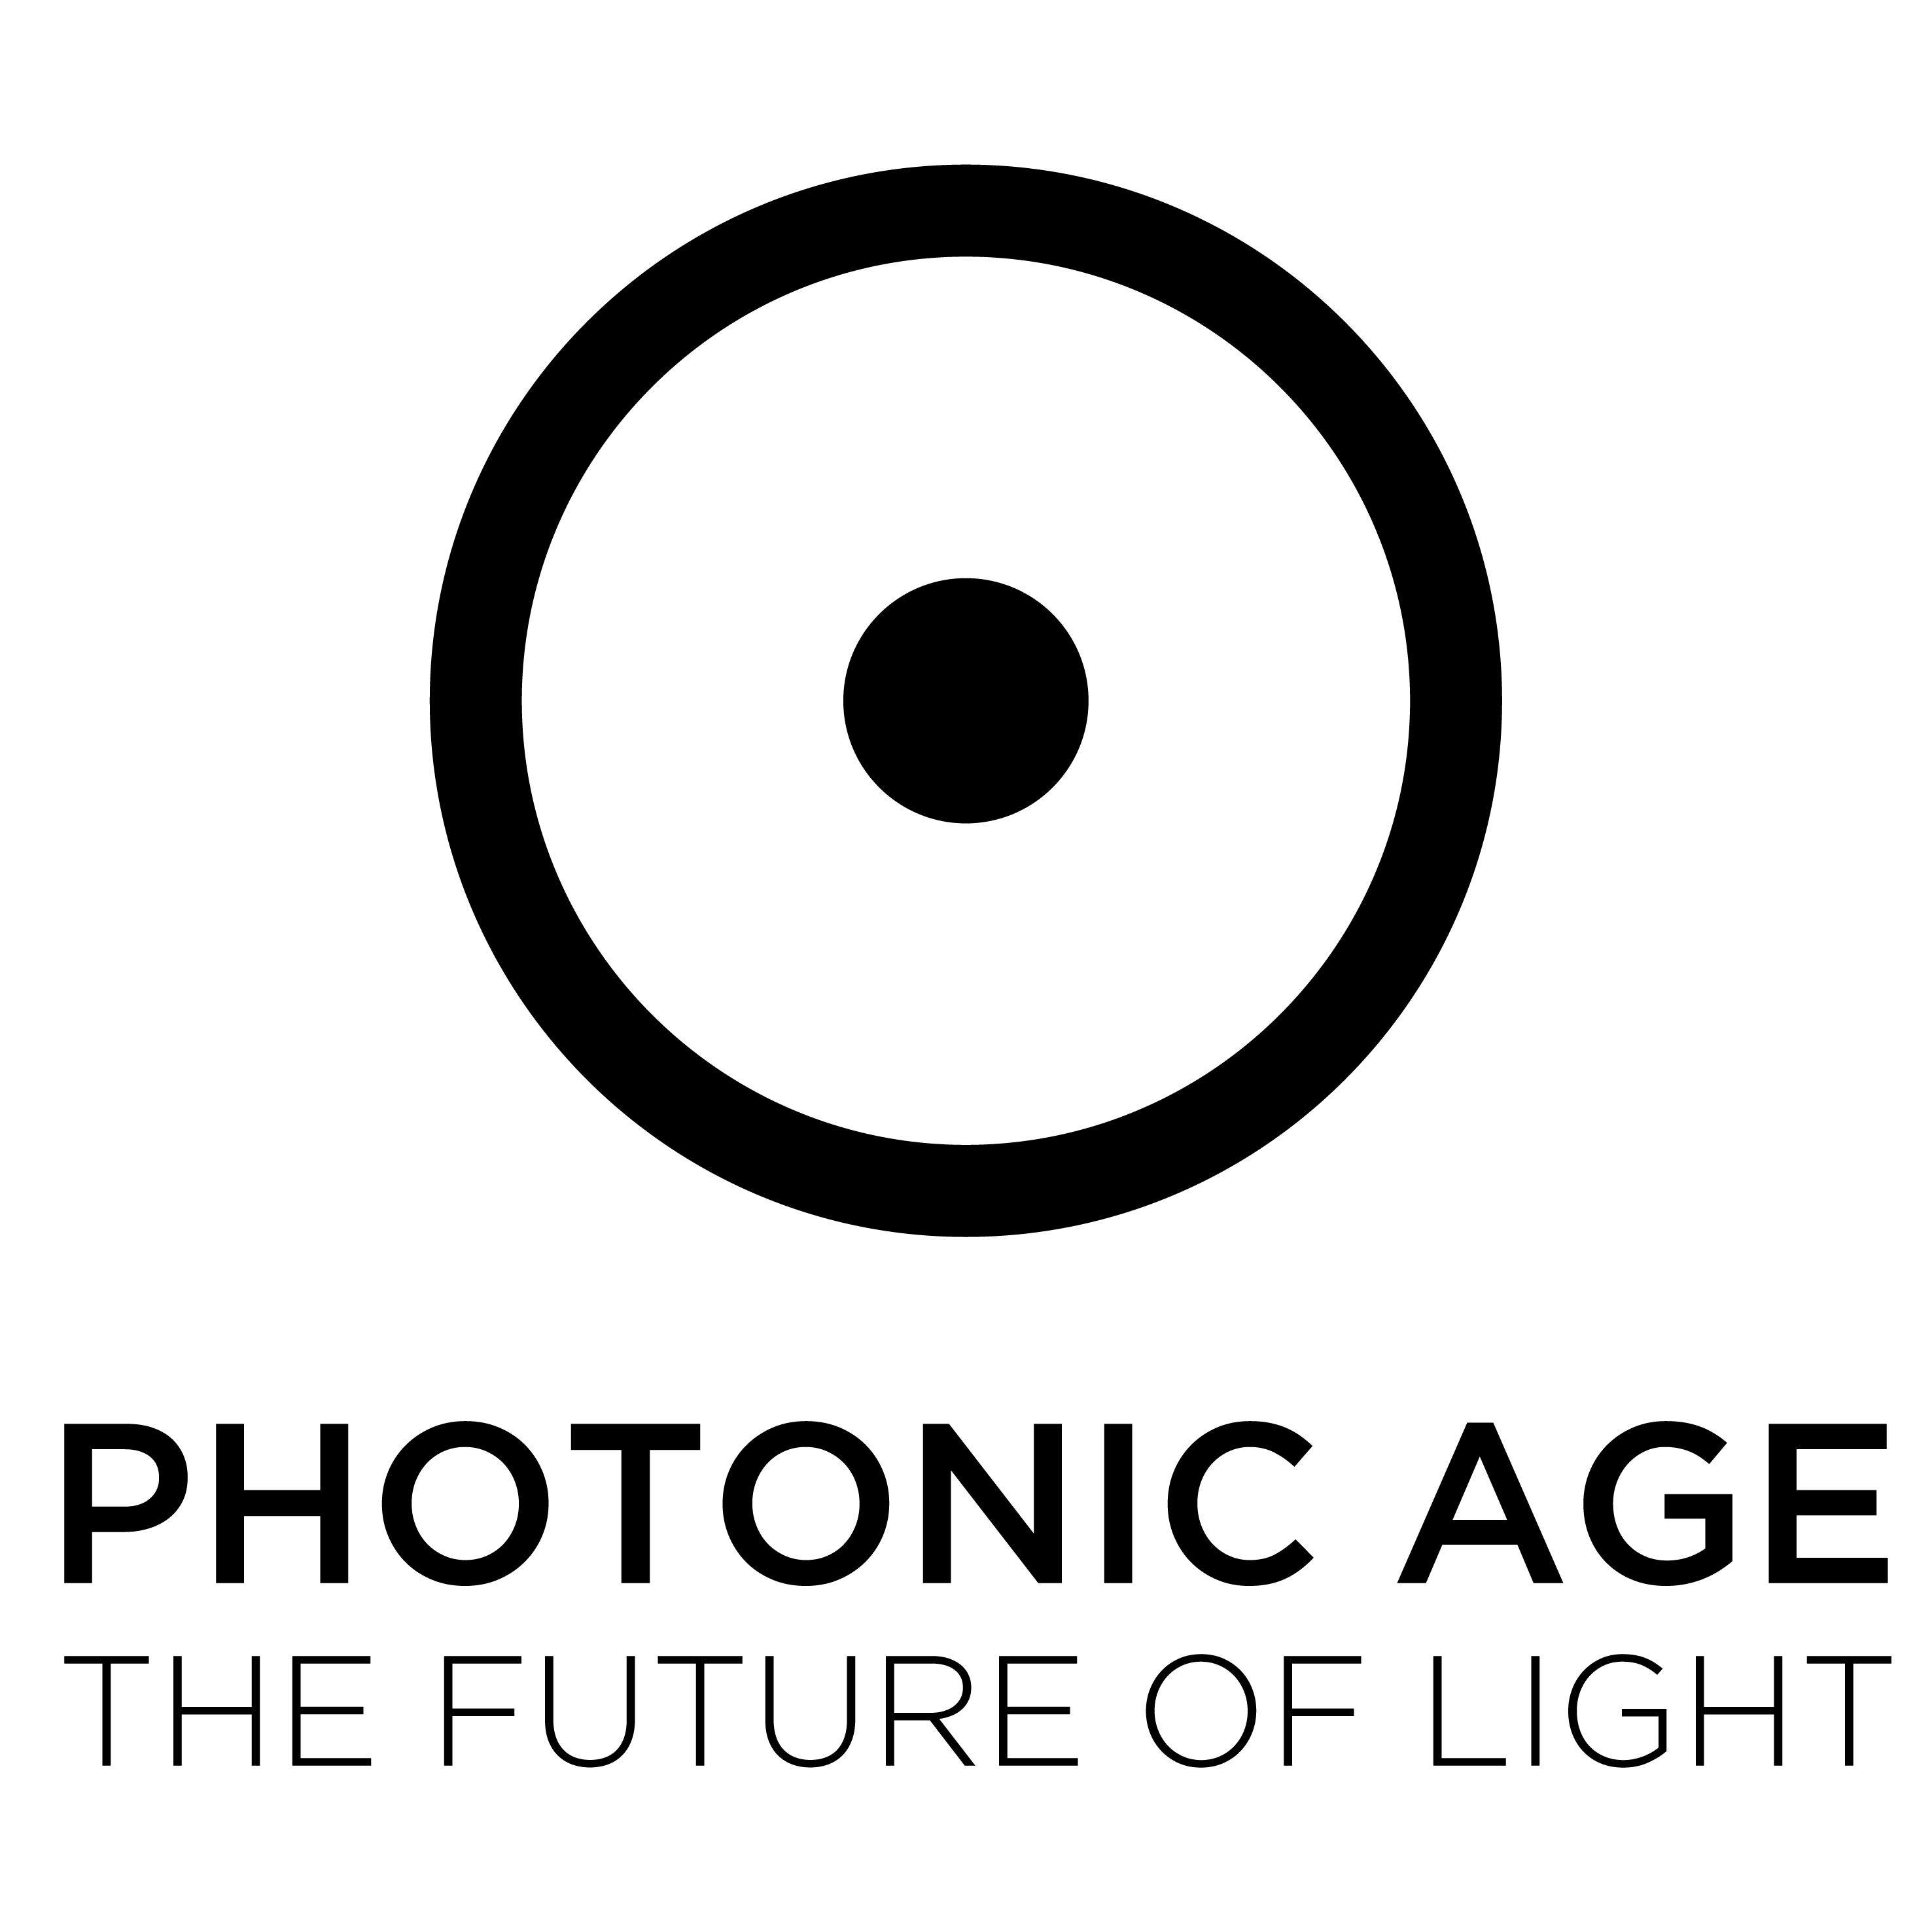 THE PHOTONIC AGE - DIE LICHTZEIT